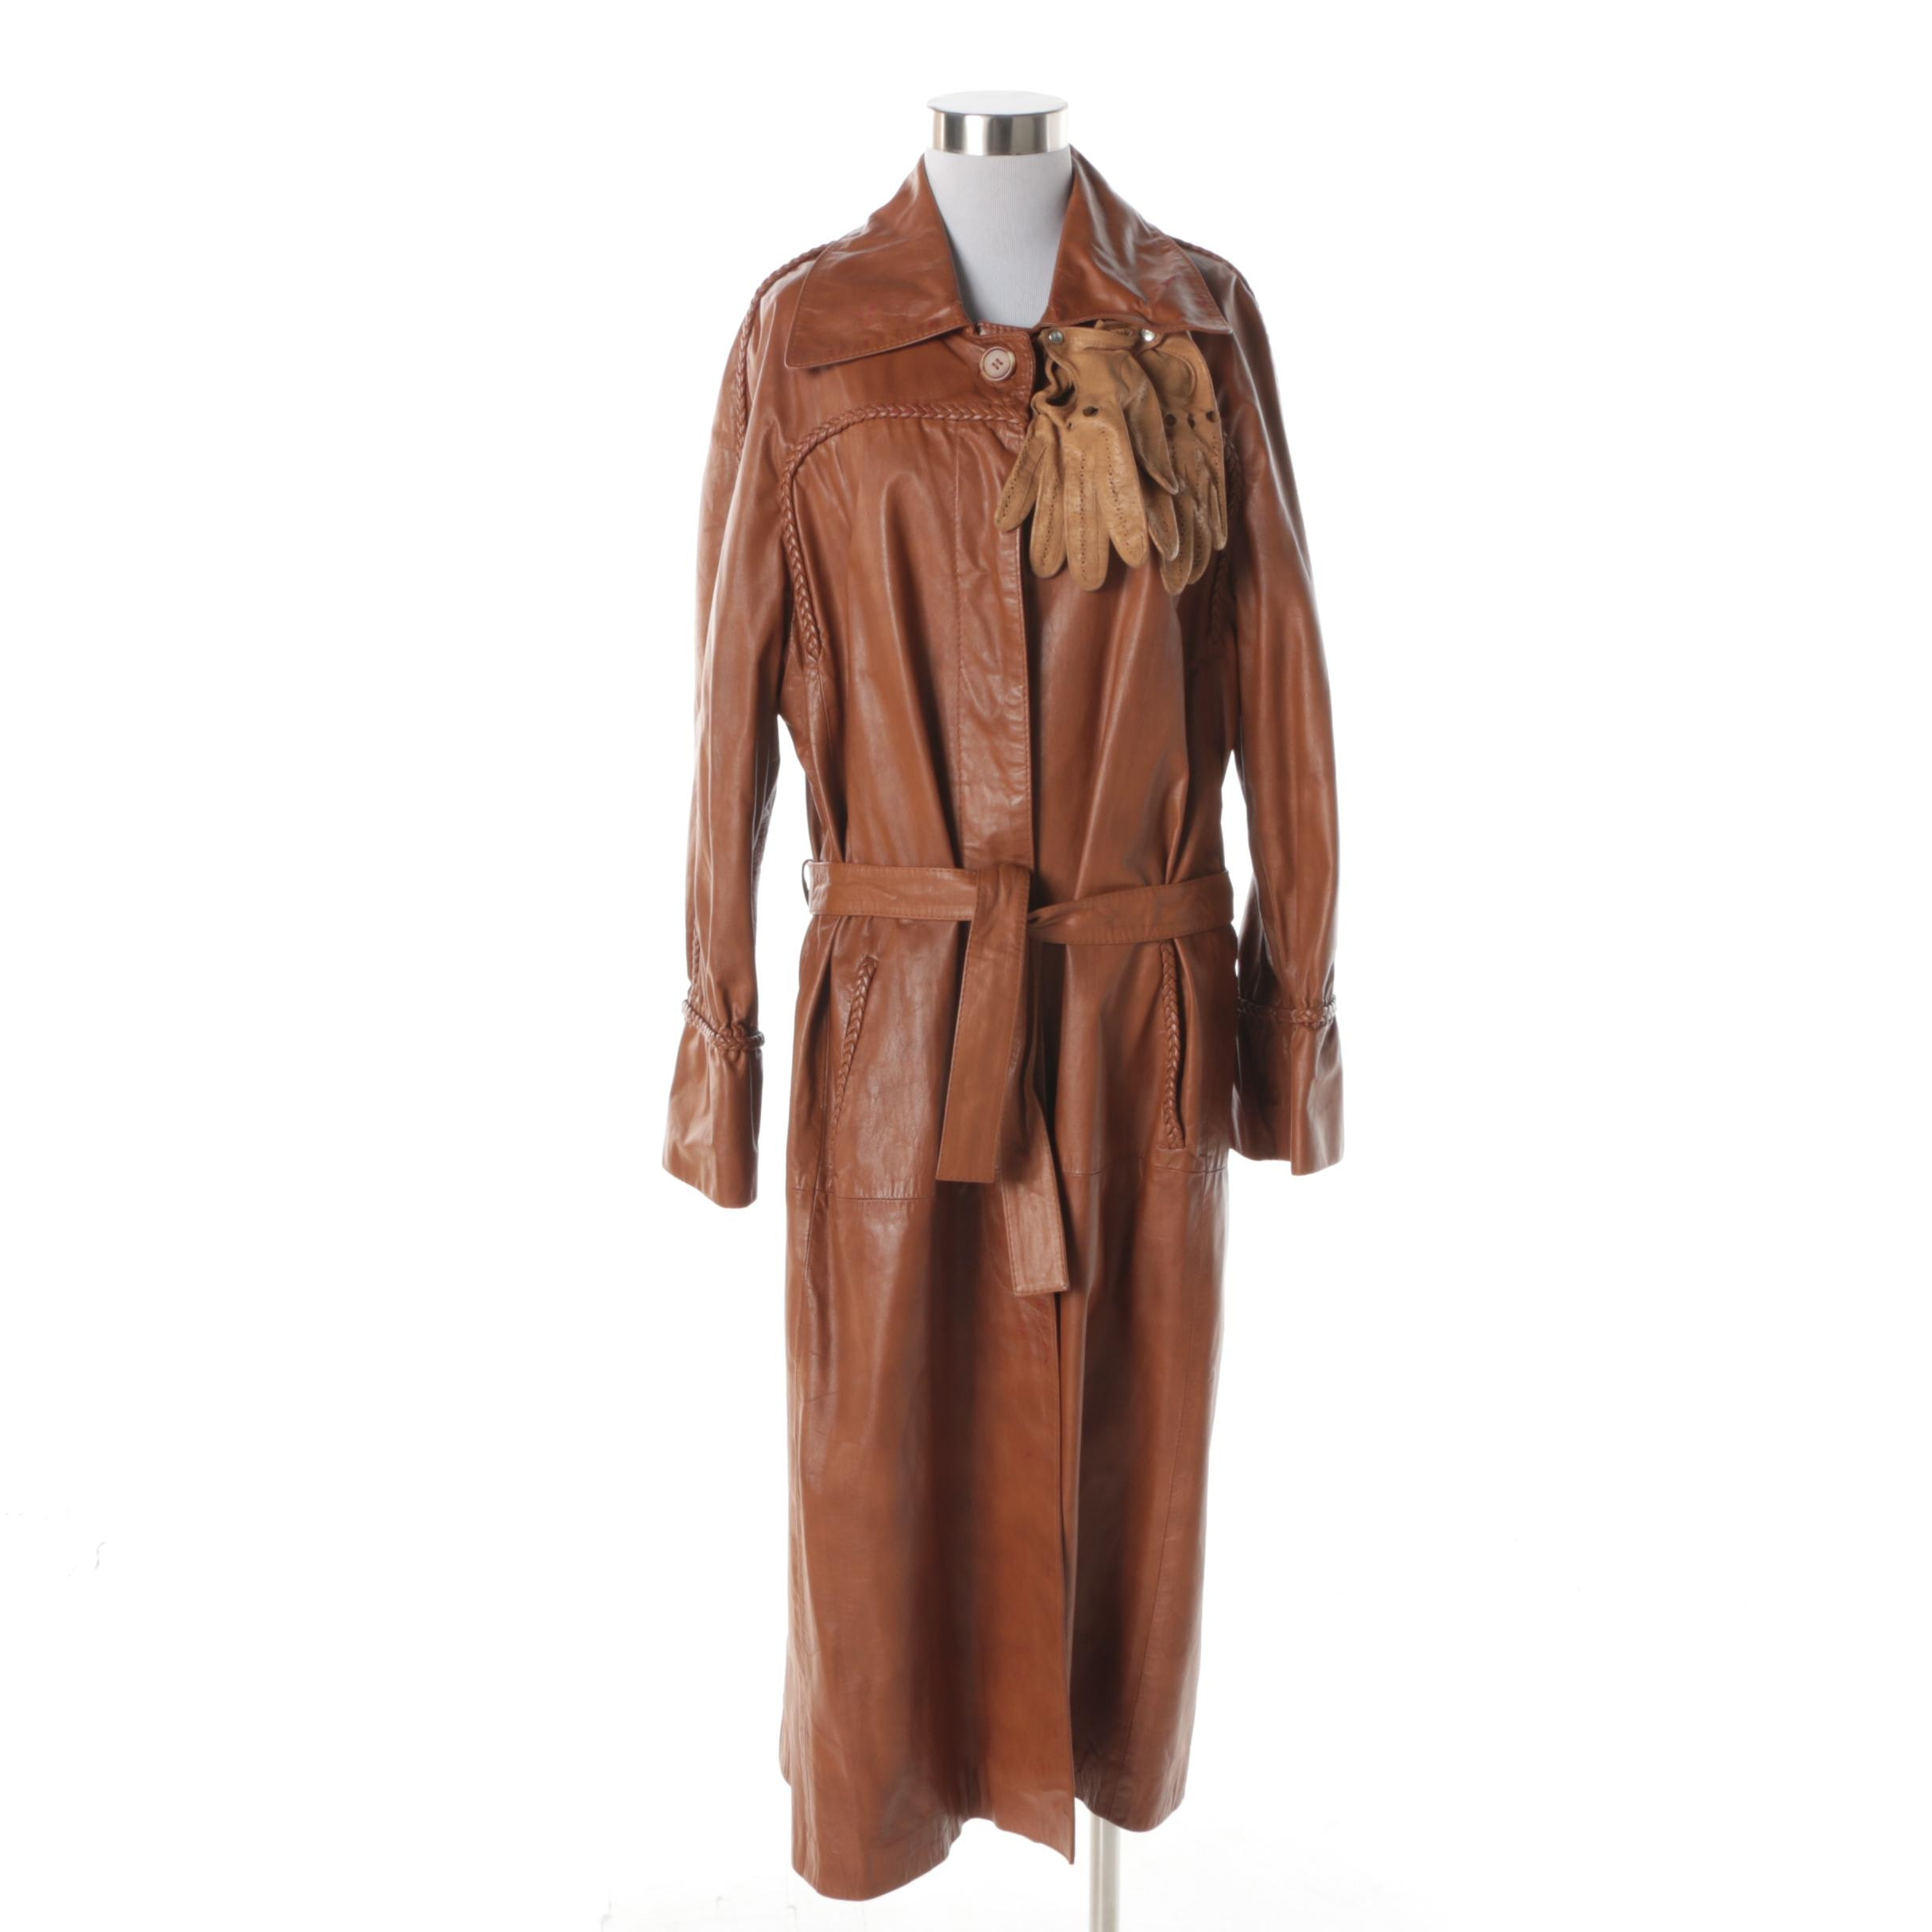 Women's Vintage Imperial Cognac Leather Coat with Tan Leather Driving Gloves